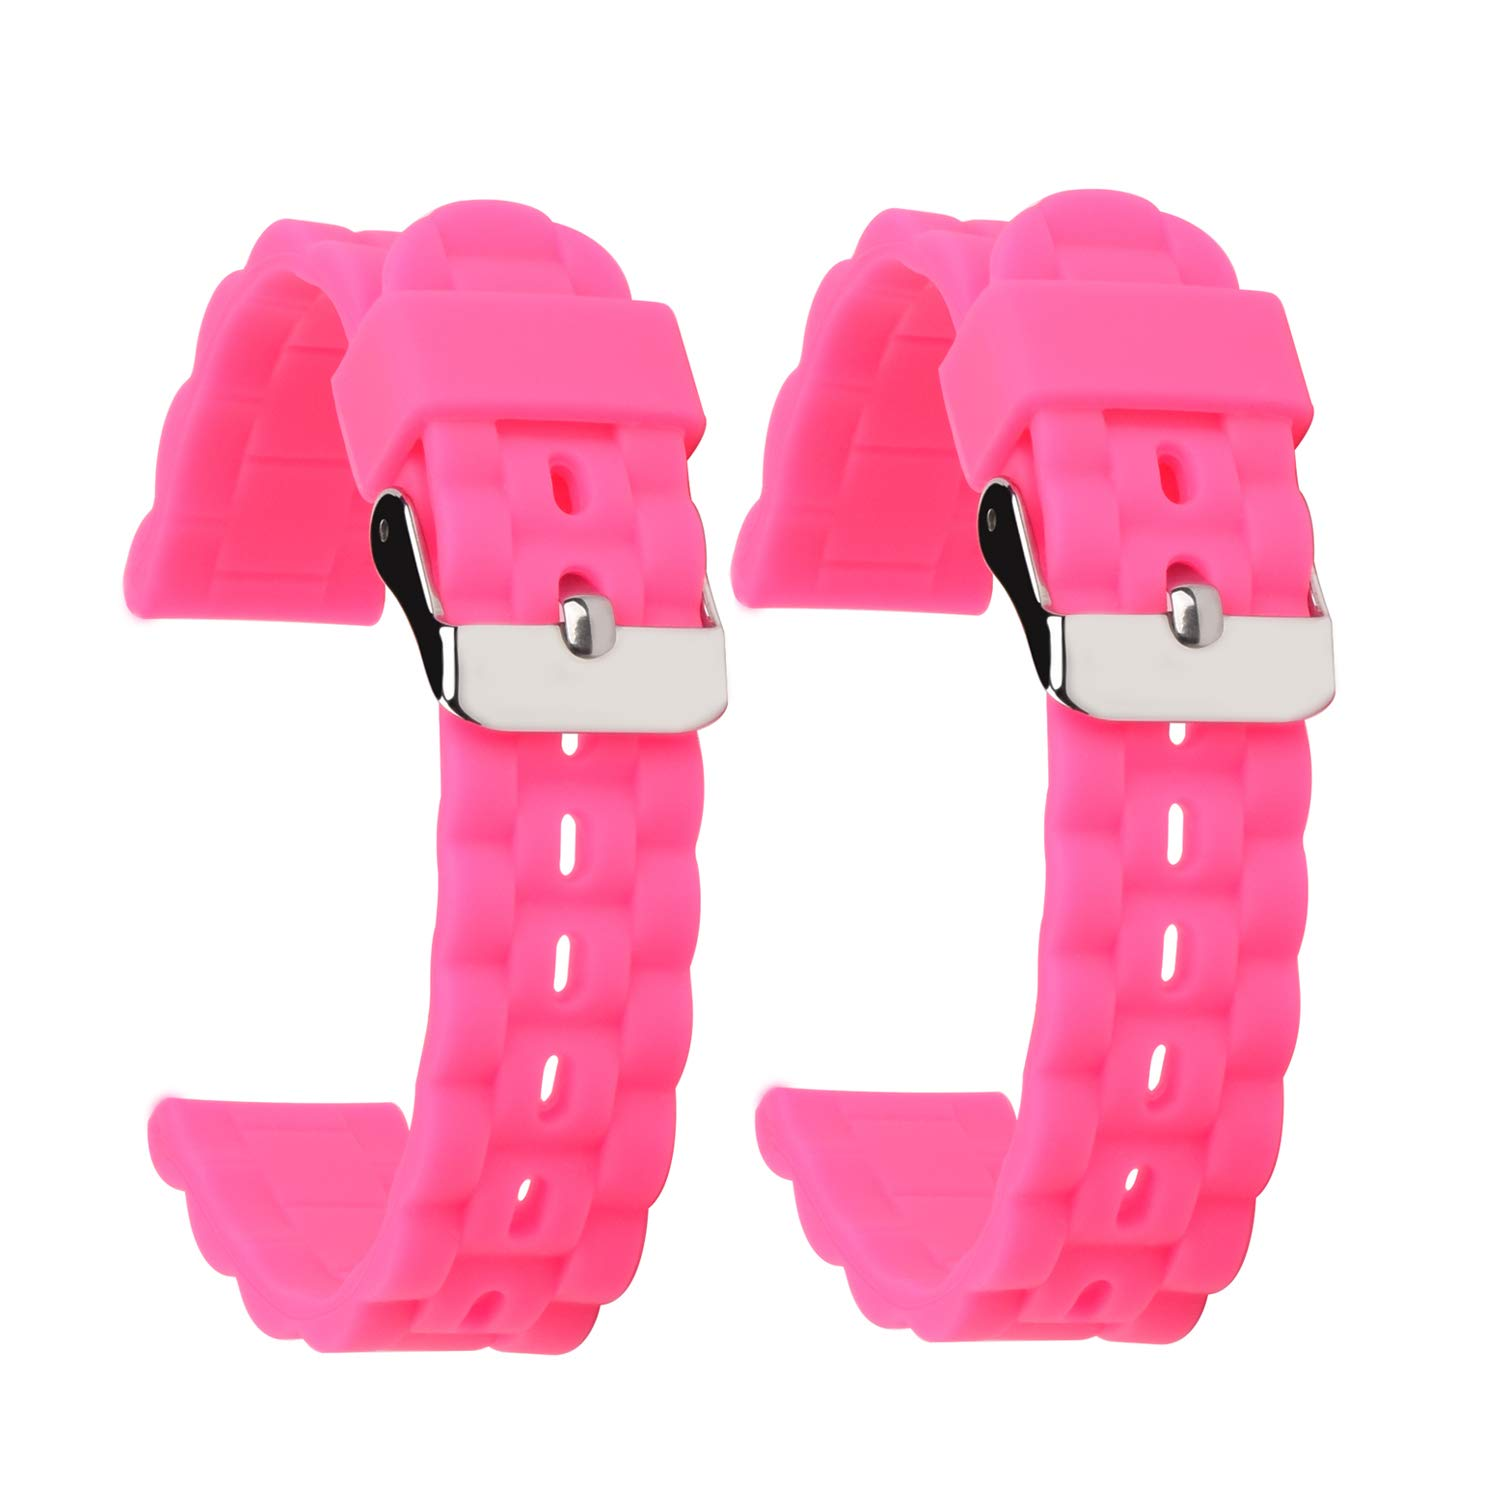 SANHEXING 2 Pack Tire Pattern Wavy Silicone Watch Bands 16mm Pink Premium Silicone Watch Straps Soft Rubber Watch Bands for Children by sanhexing